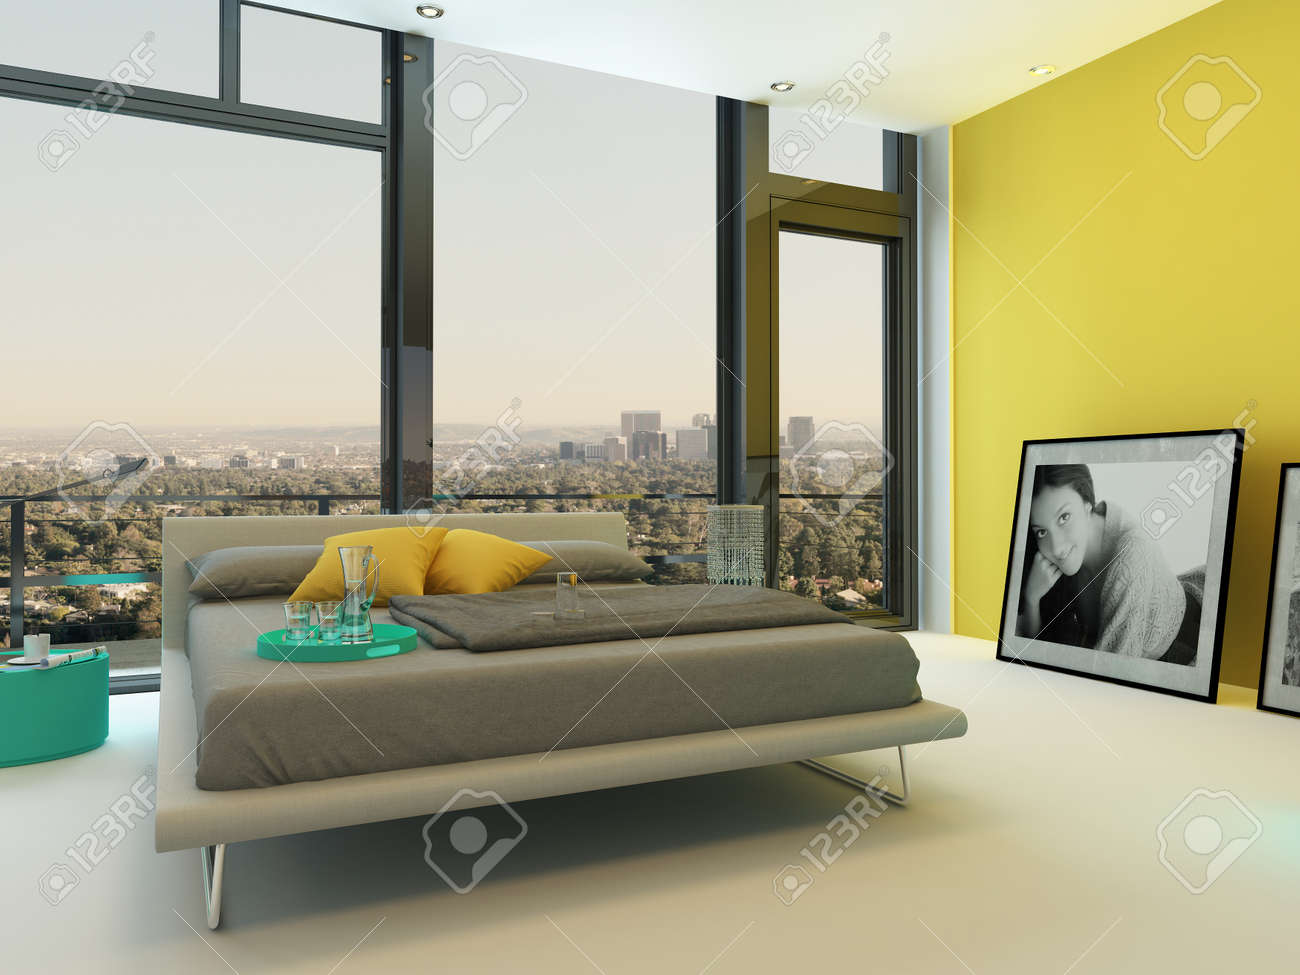 Turquoise Living Room Spacious Colorful Bedroom Interior With Yellow Wall Accents